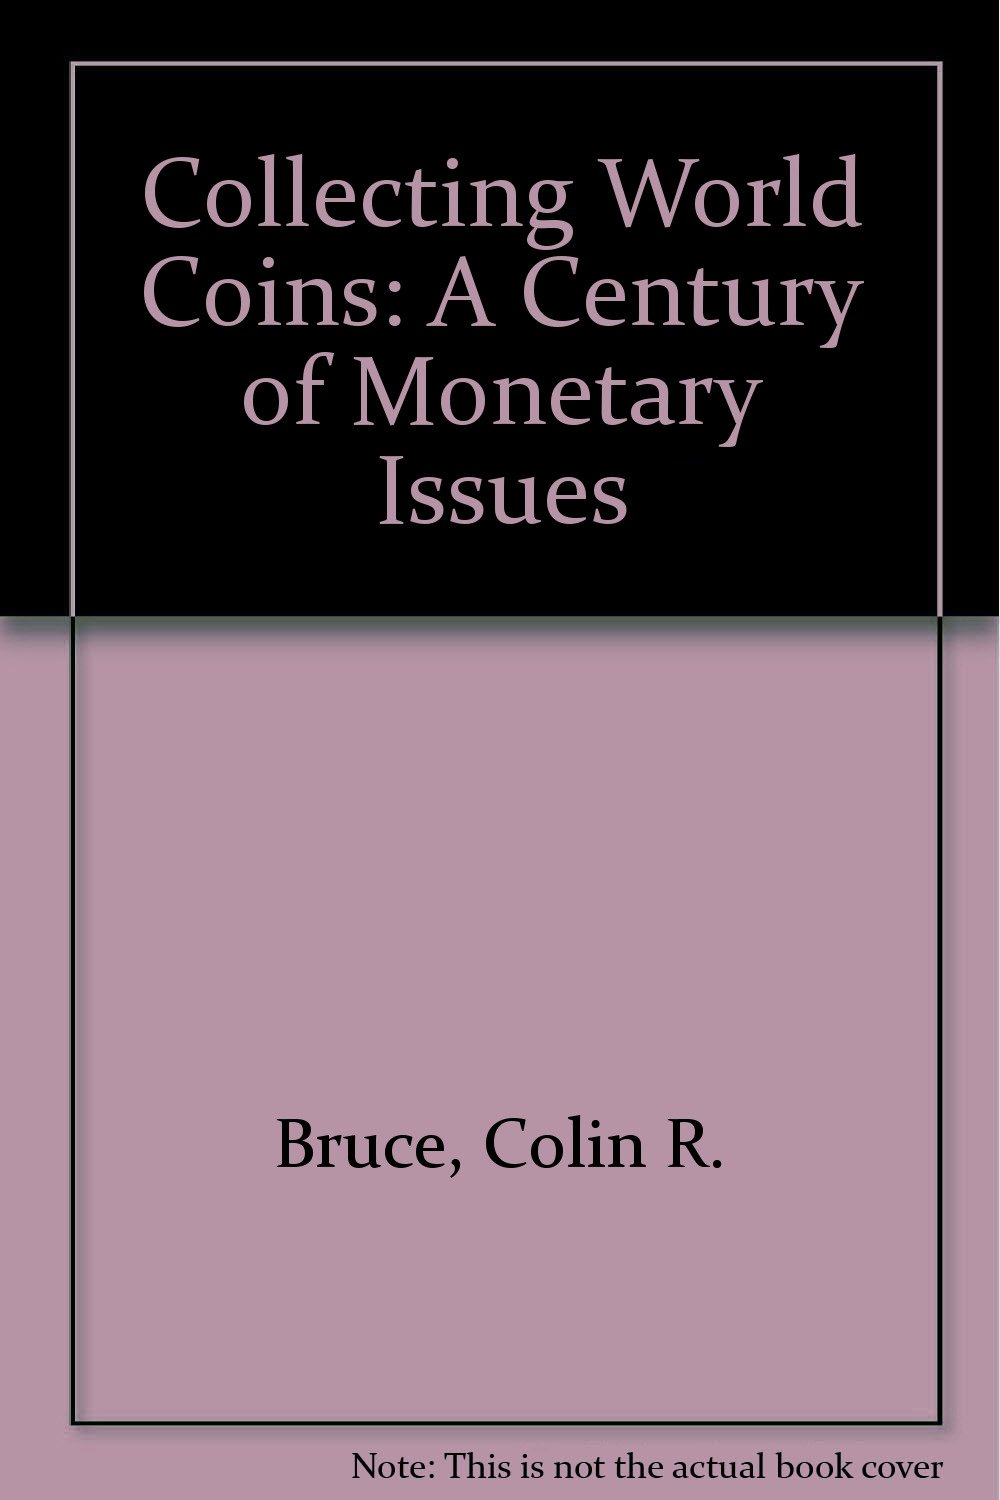 Collecting World Coins: A Century of Monetary Issues